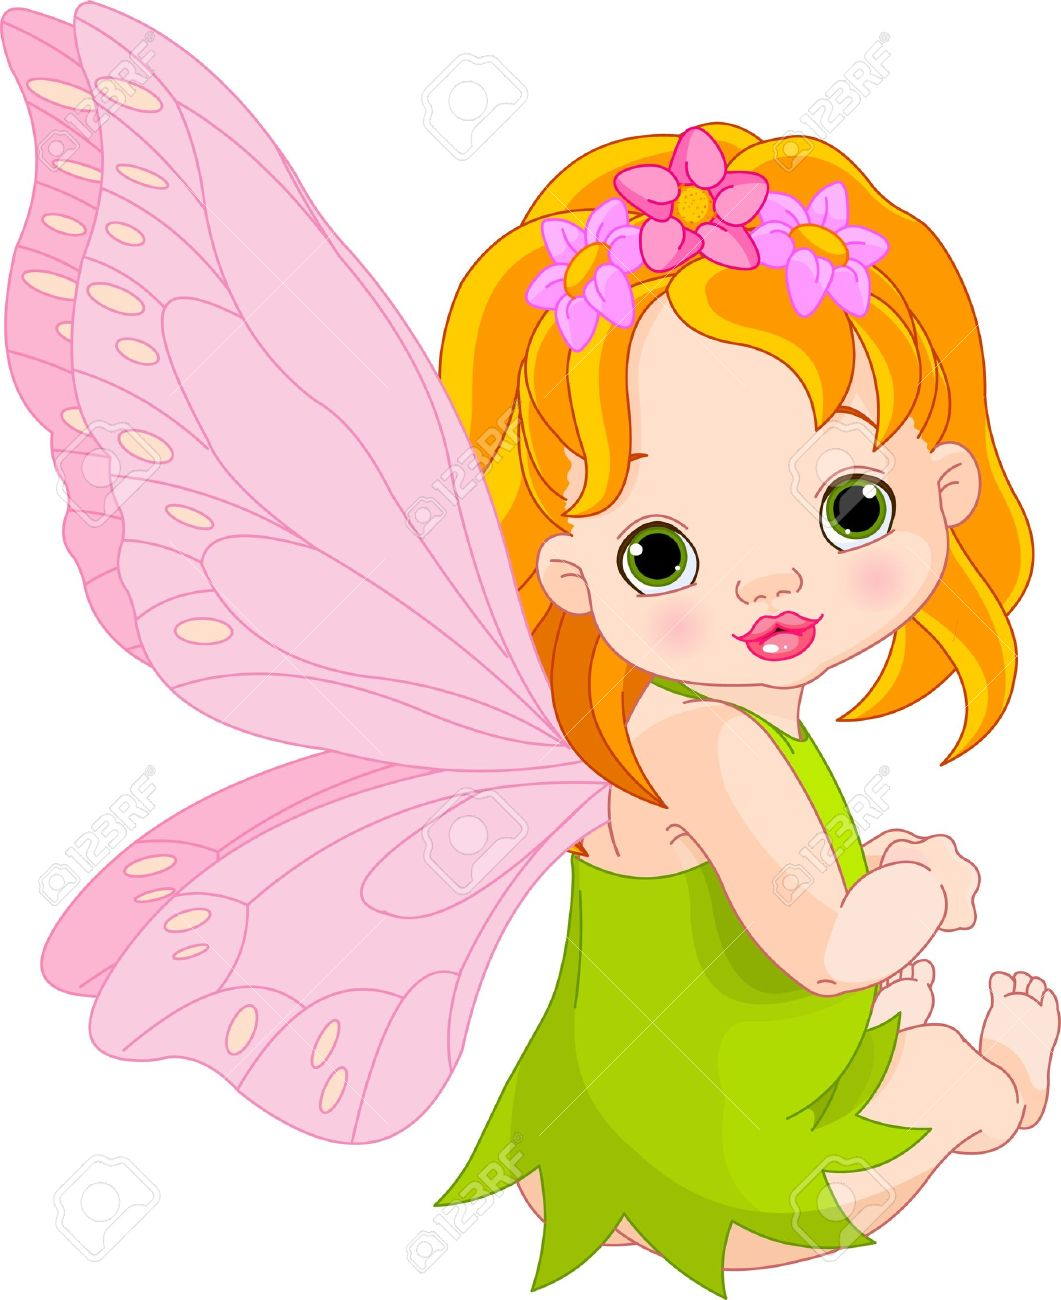 sitting cute baby fairy royalty free cliparts vectors and stock